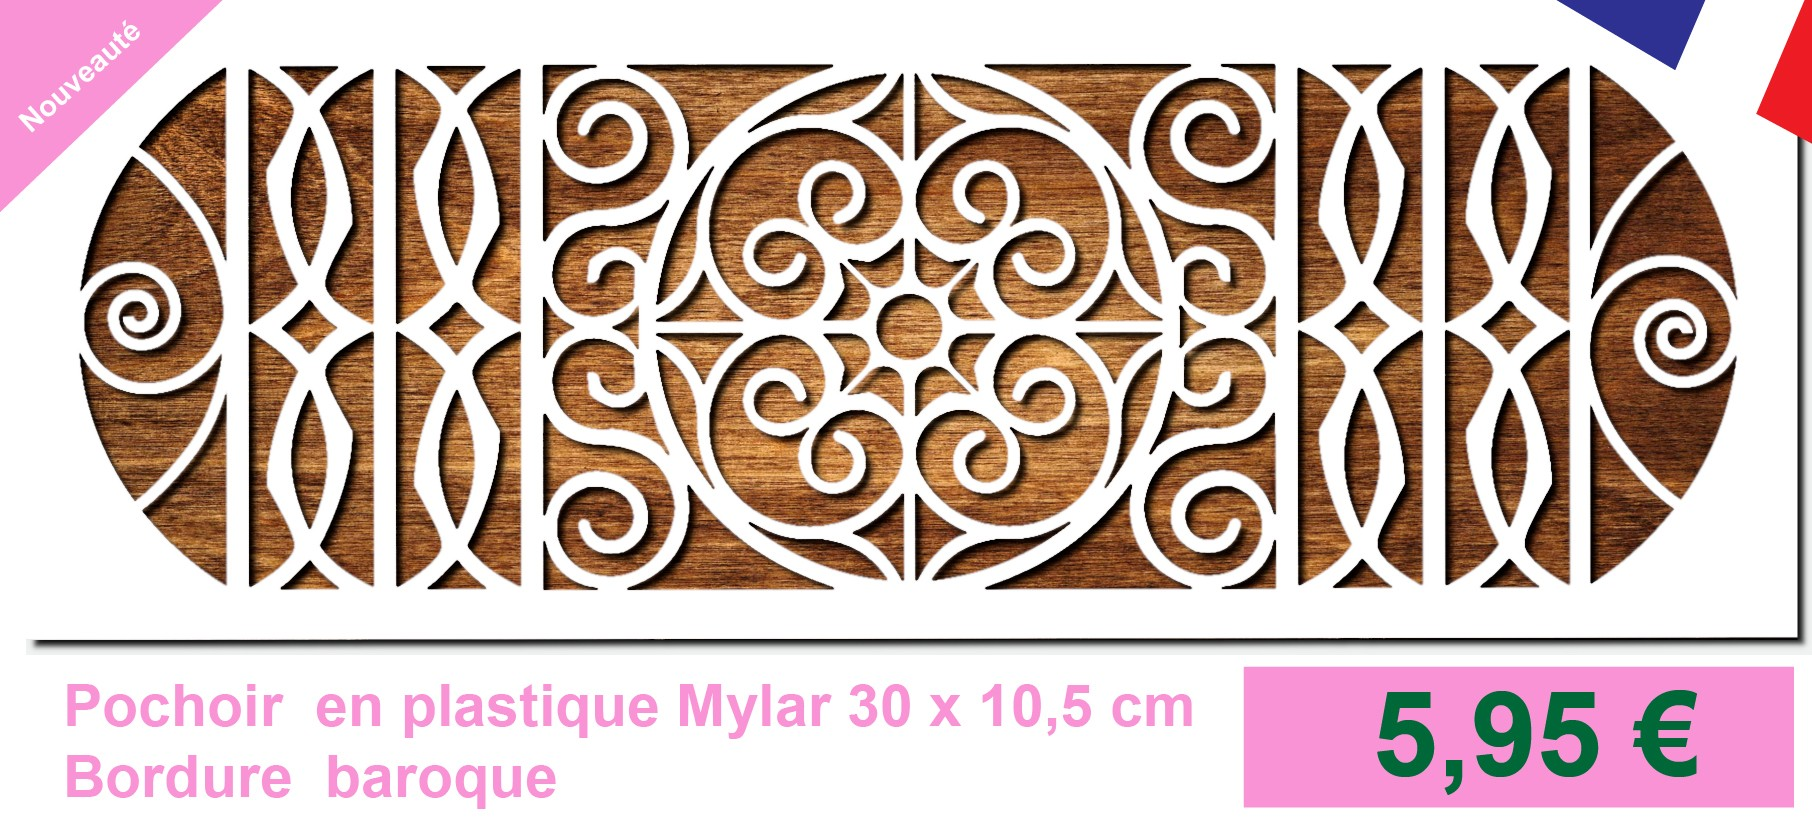 Pochoir bordure baroque 30 x 10,5 cm